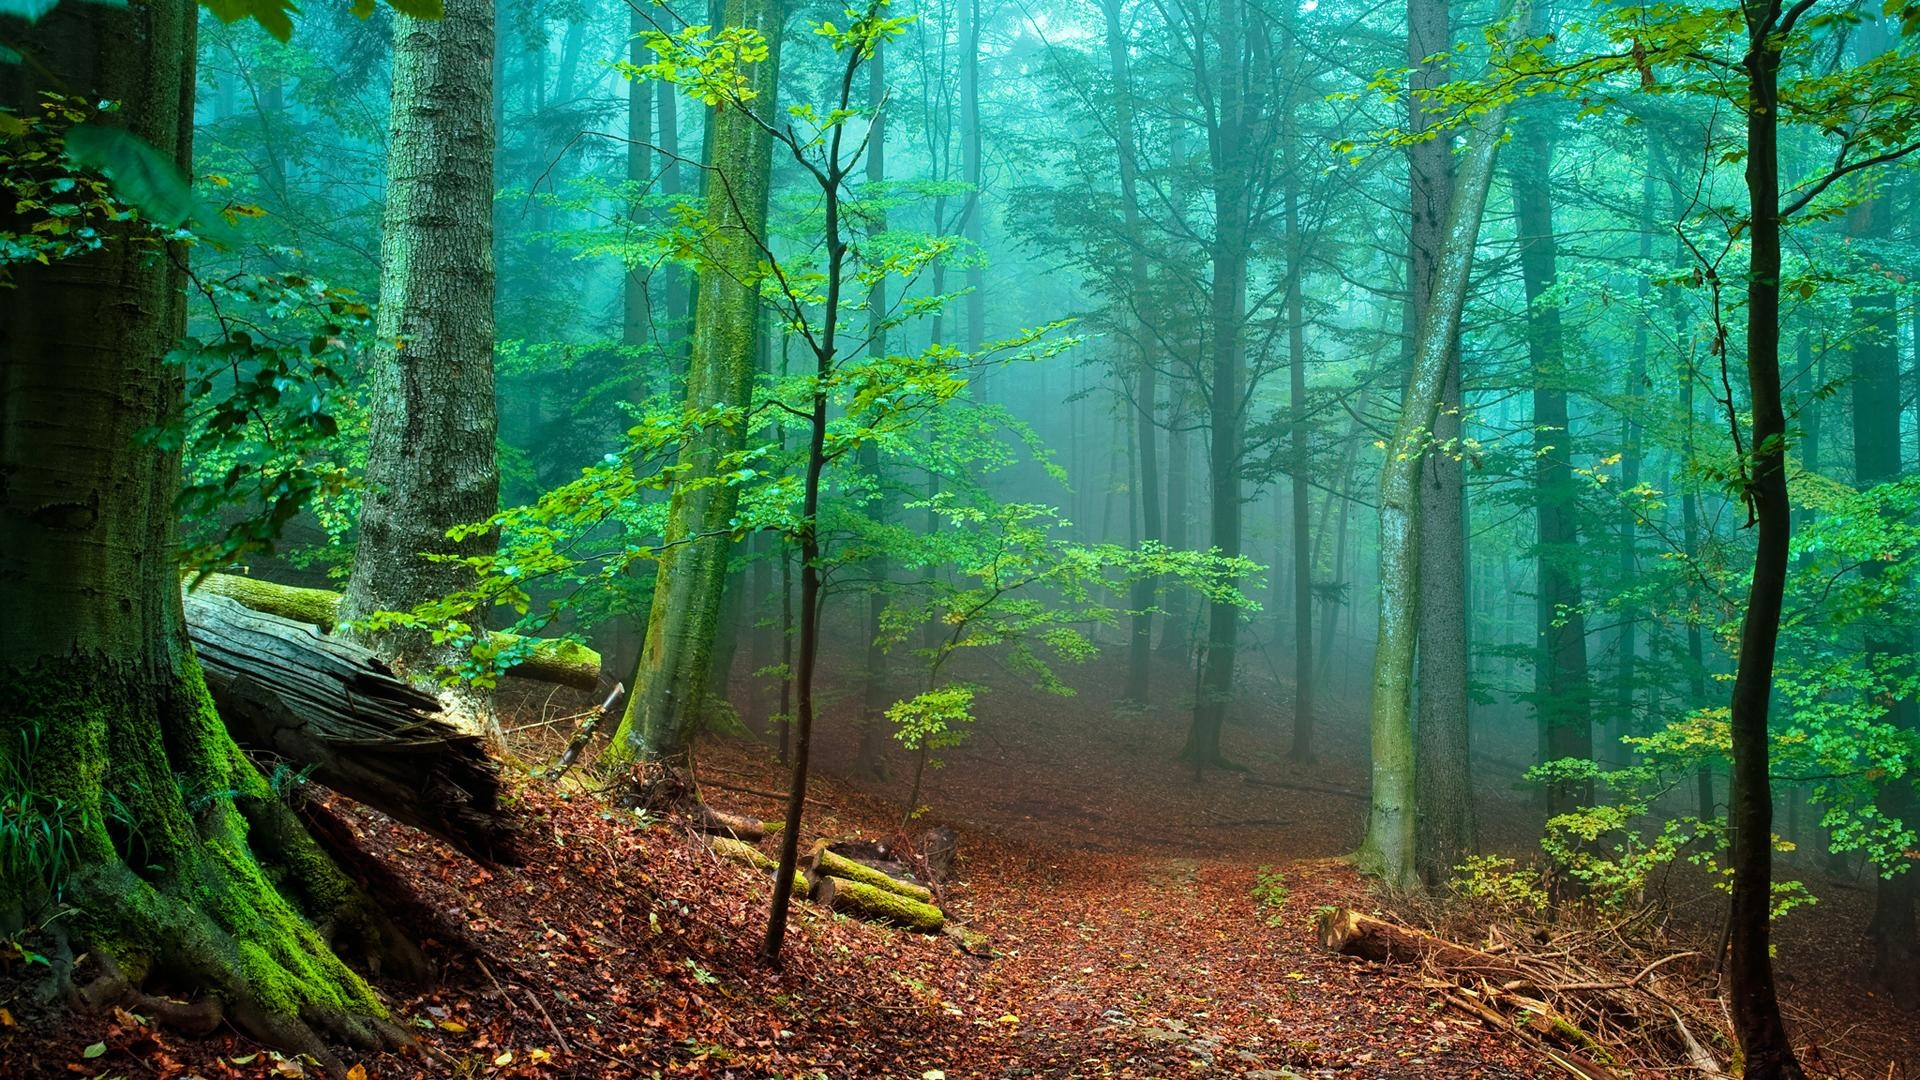 Nature Trees Forest Woods Magic Wallpaper 1920 215 1080 1080p